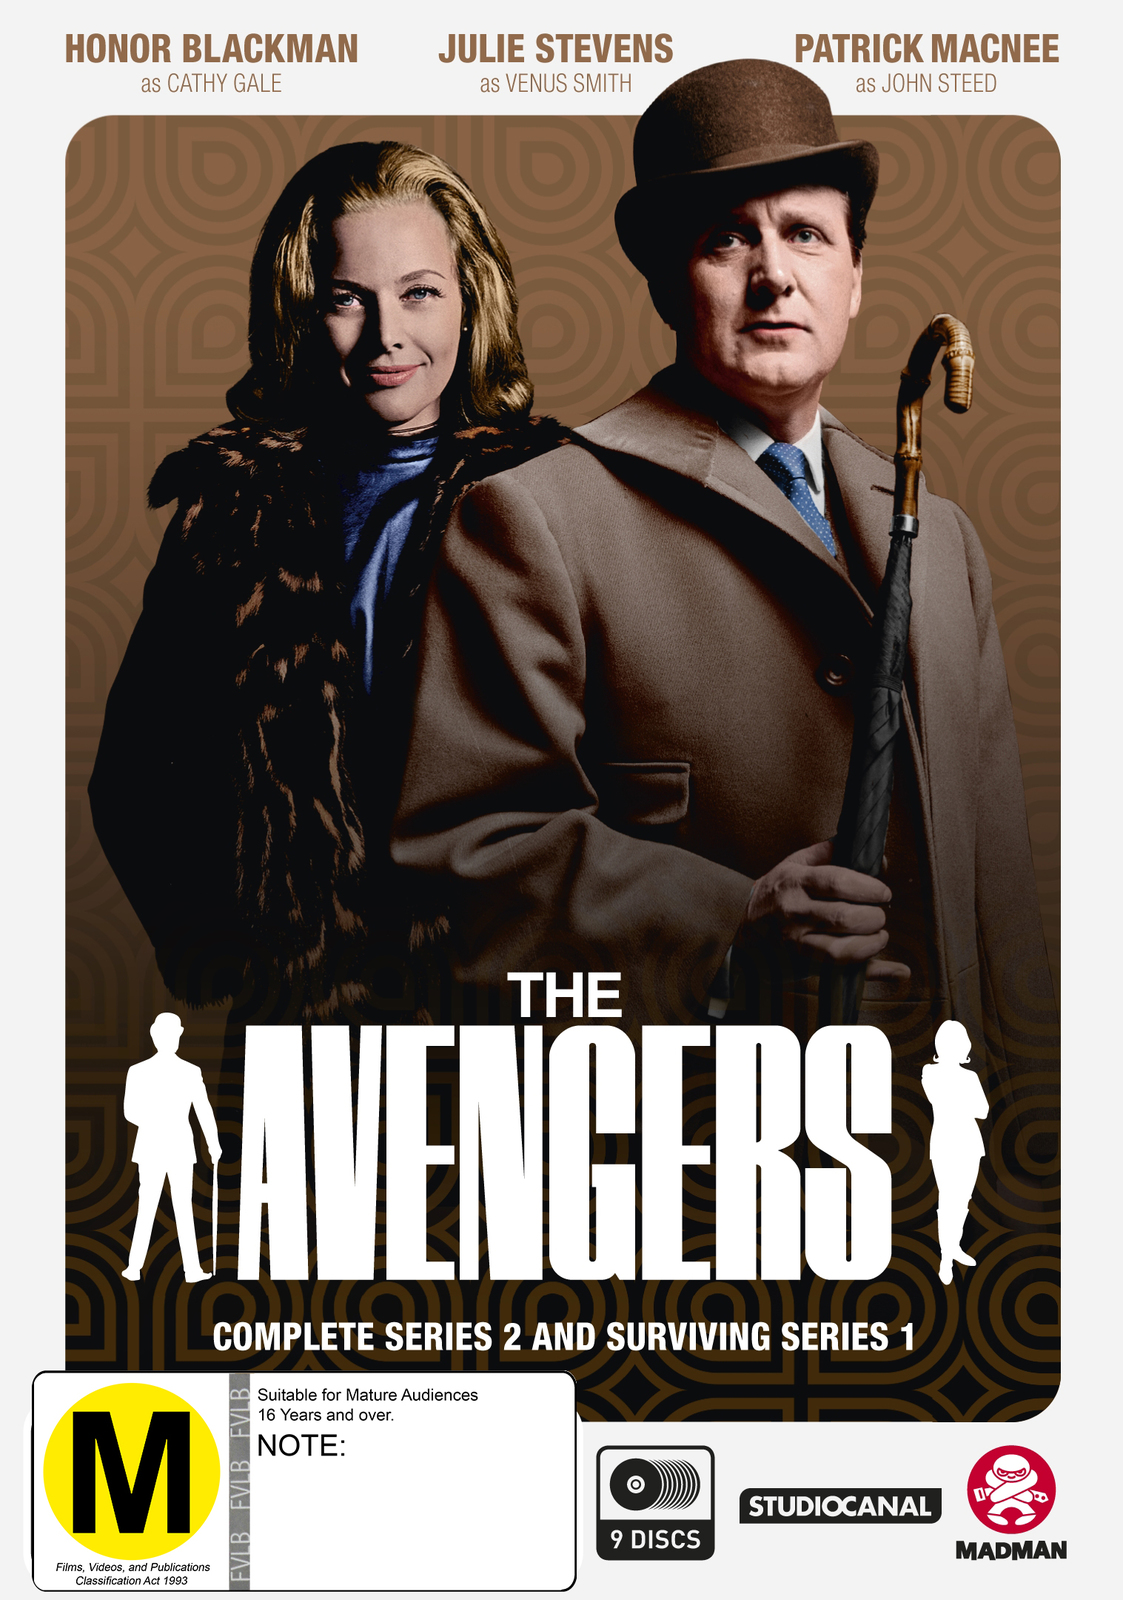 The Avengers - Complete Series 2 & Surviving Series 1 on DVD image